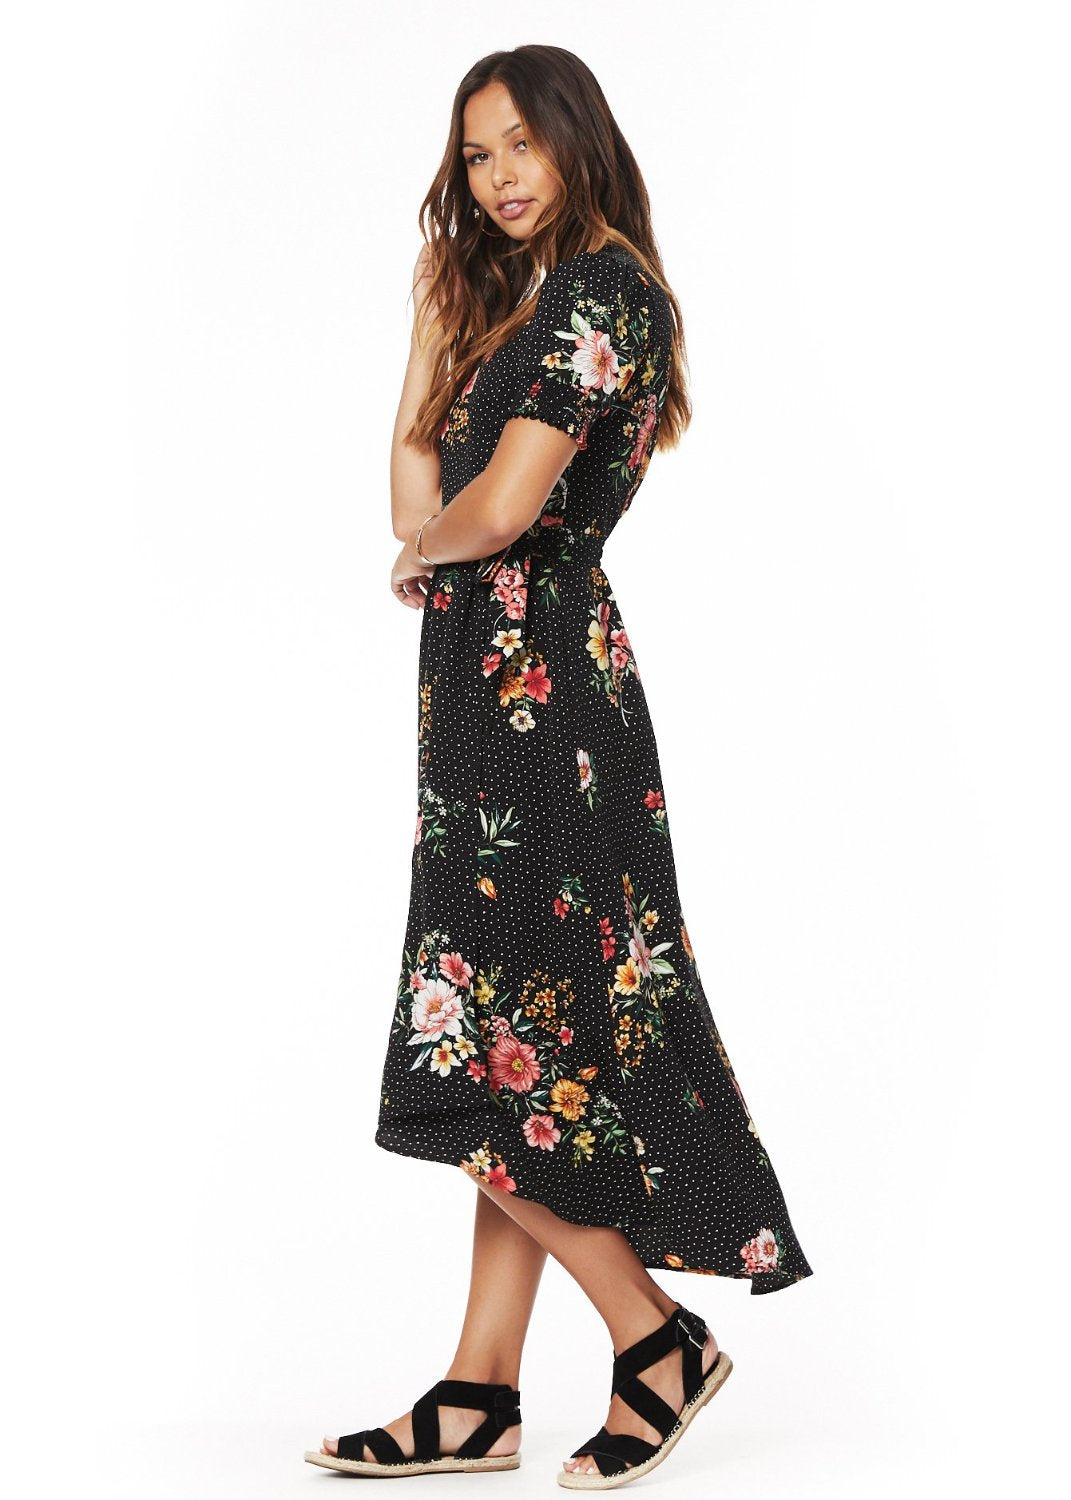 Downtown Floral Midi Dress